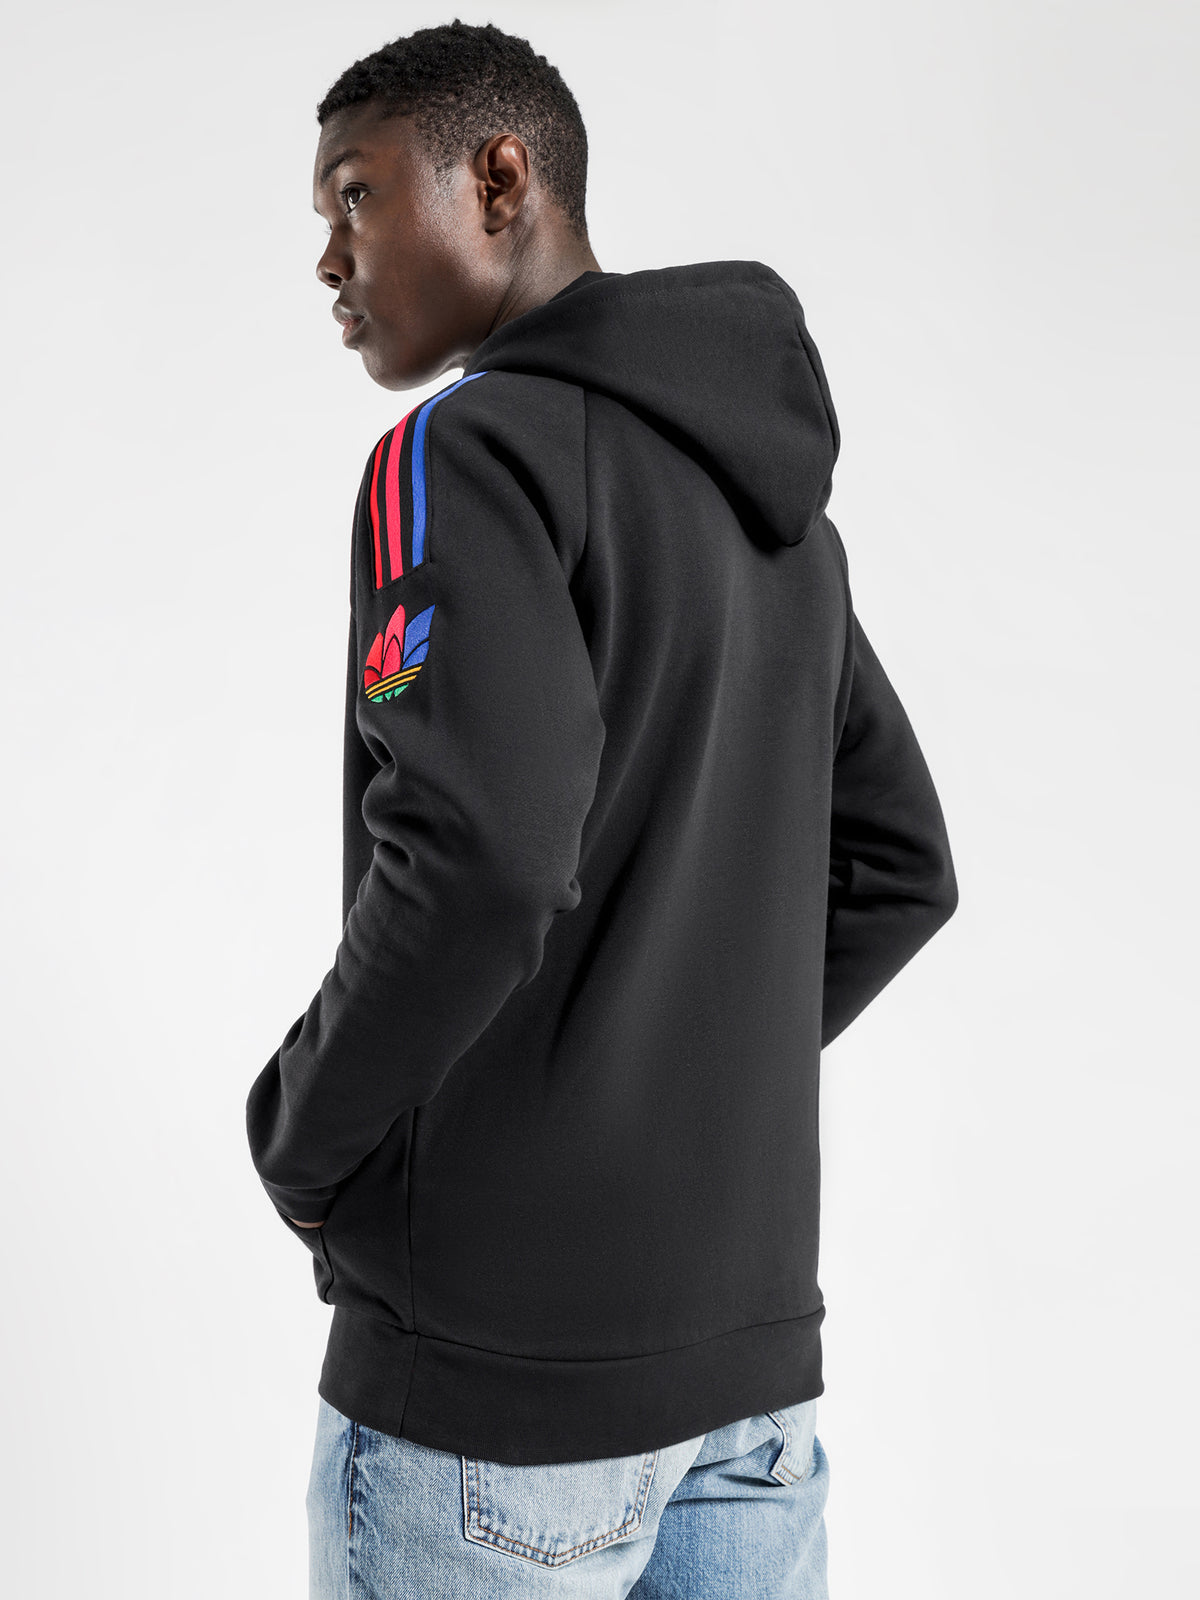 Adicolour 3D Trefoil 3 - Stripes Hoodie in Black